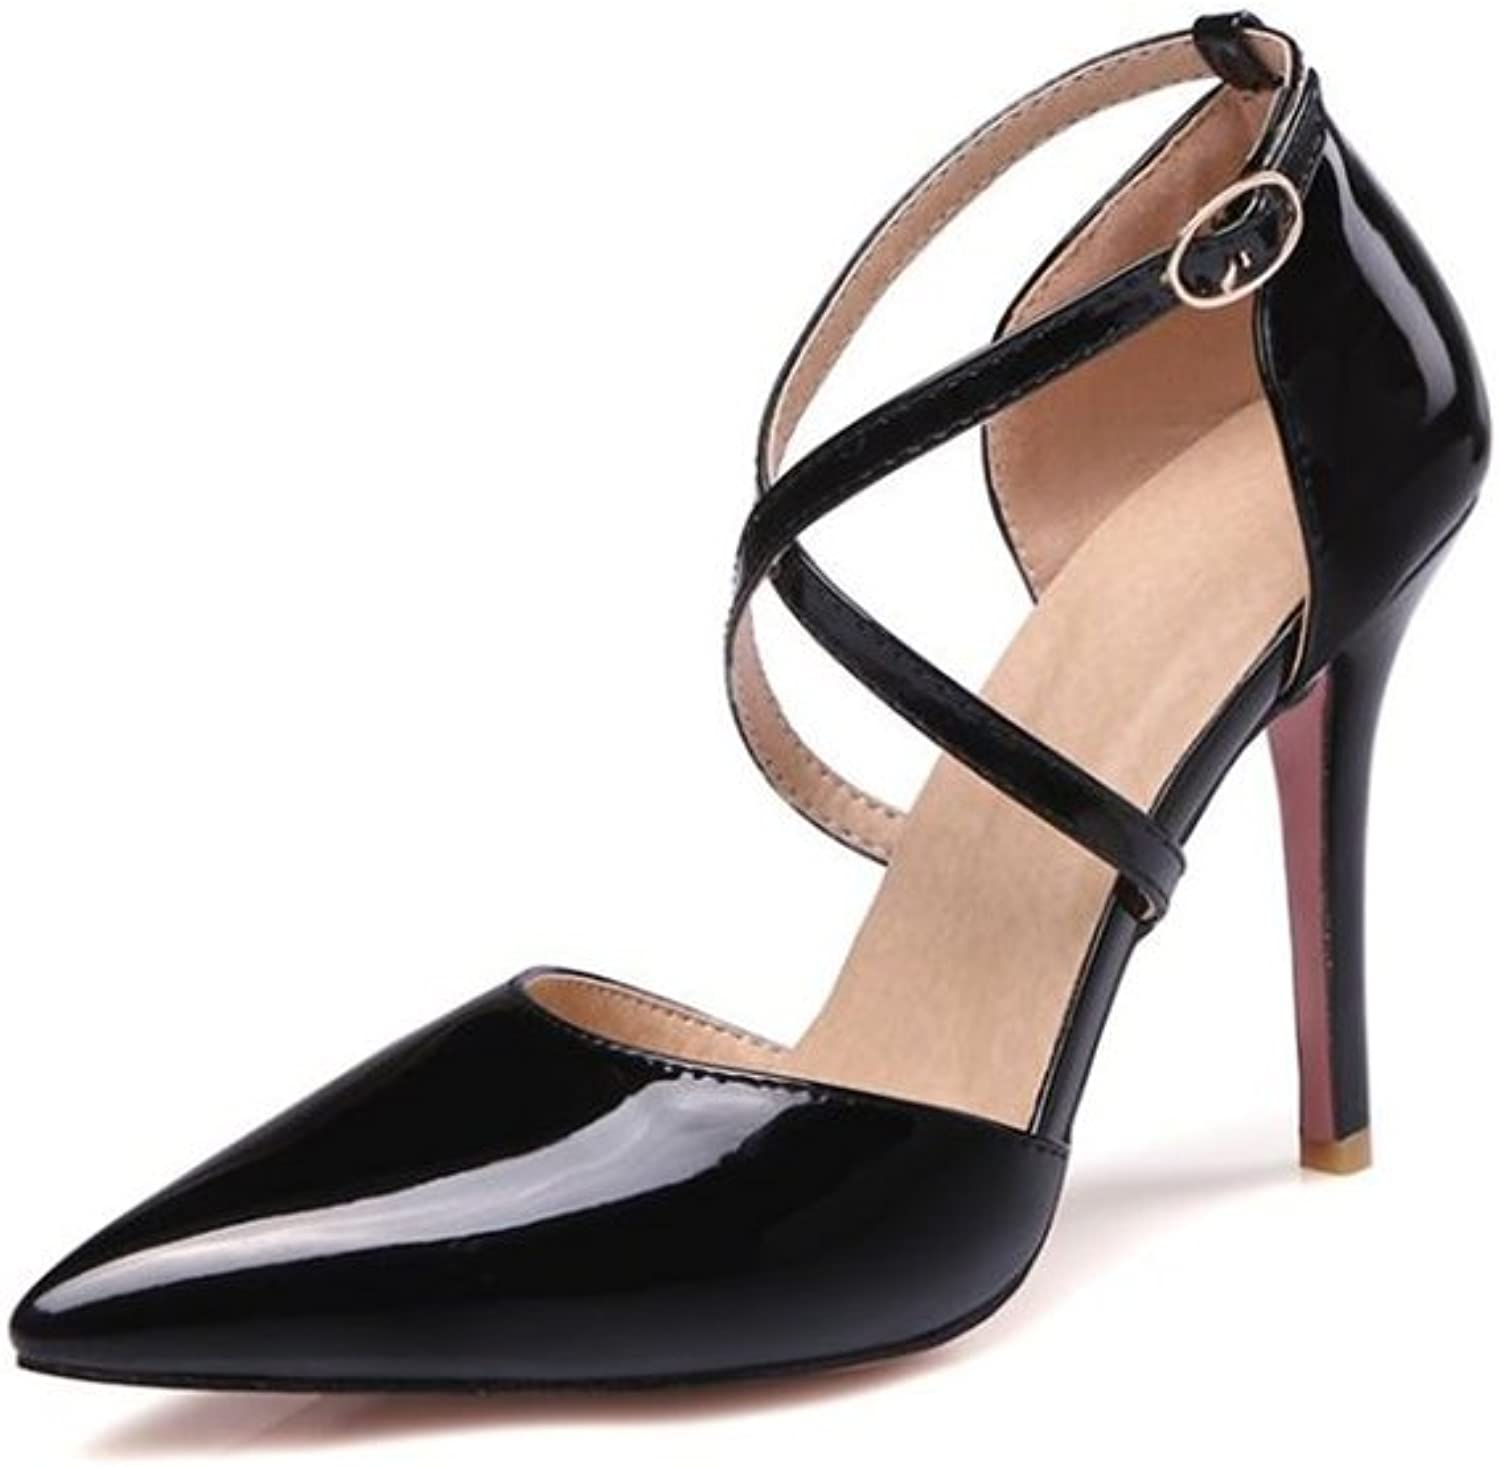 Xiaoyang Women's High Heels Dress Pumps Pointed Toe Stiletto Fashion Classic shoes